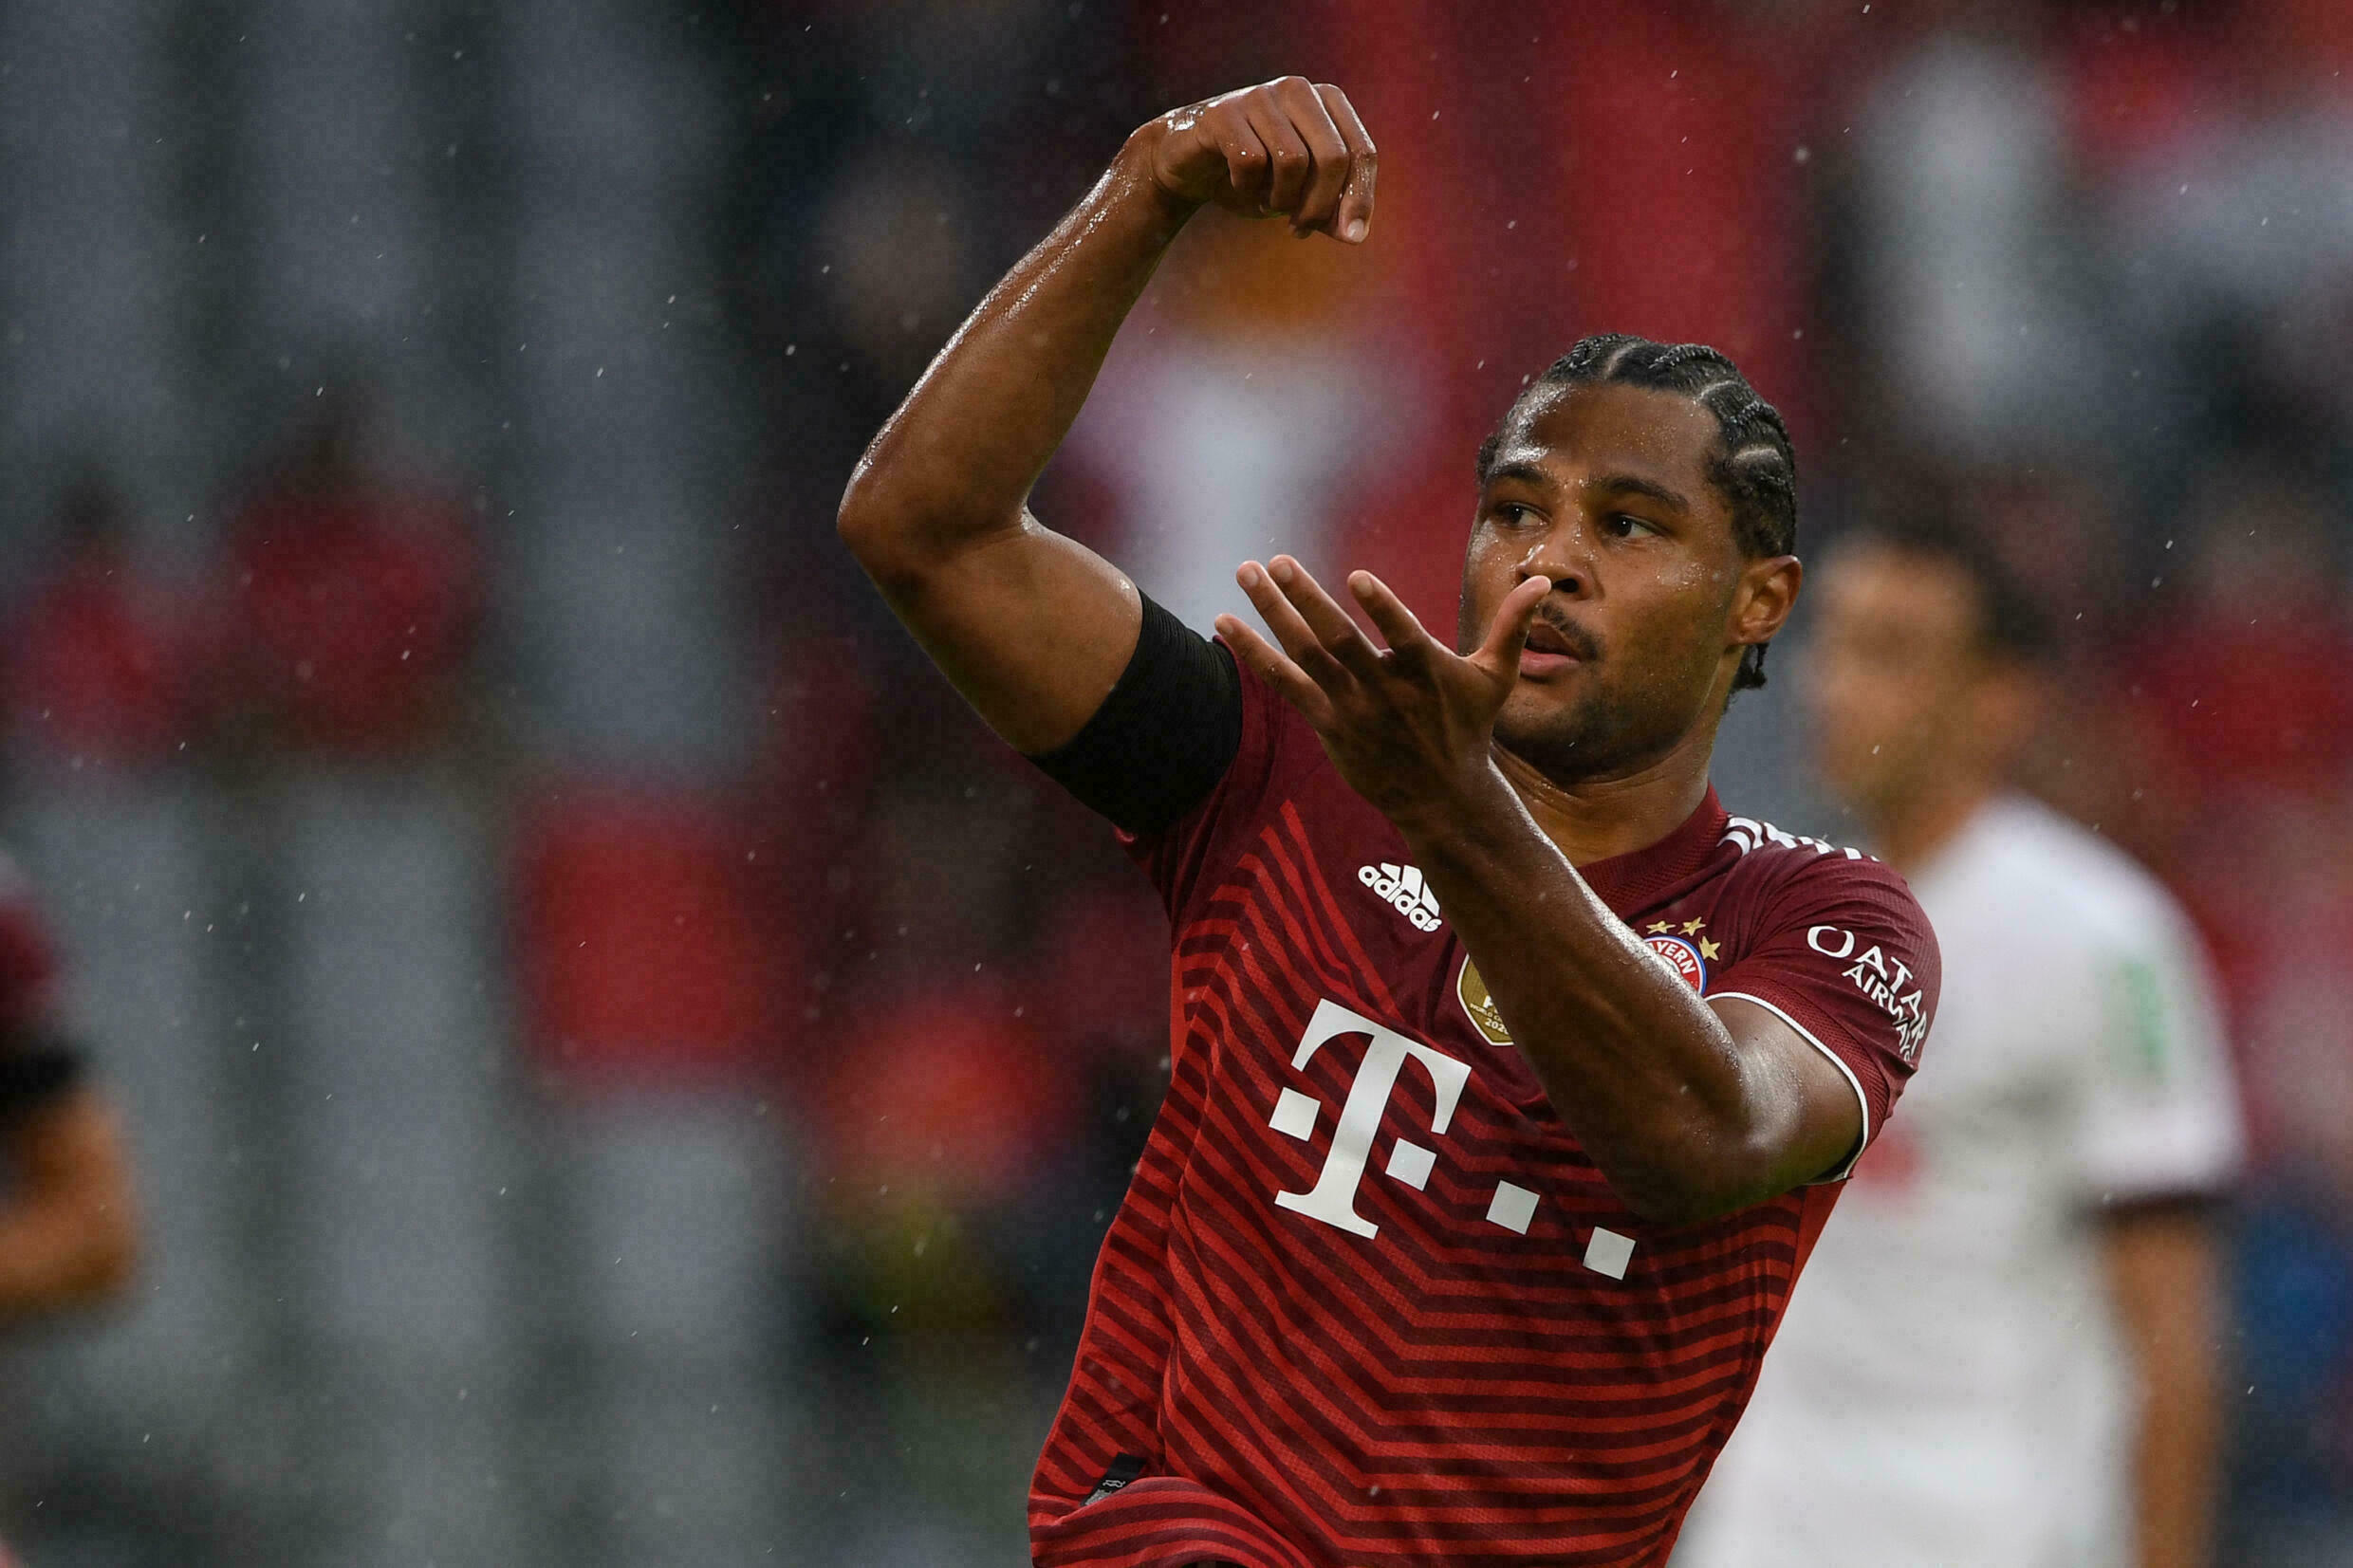 Gnabry scores twice as Bayern Munich squeeze past Cologne